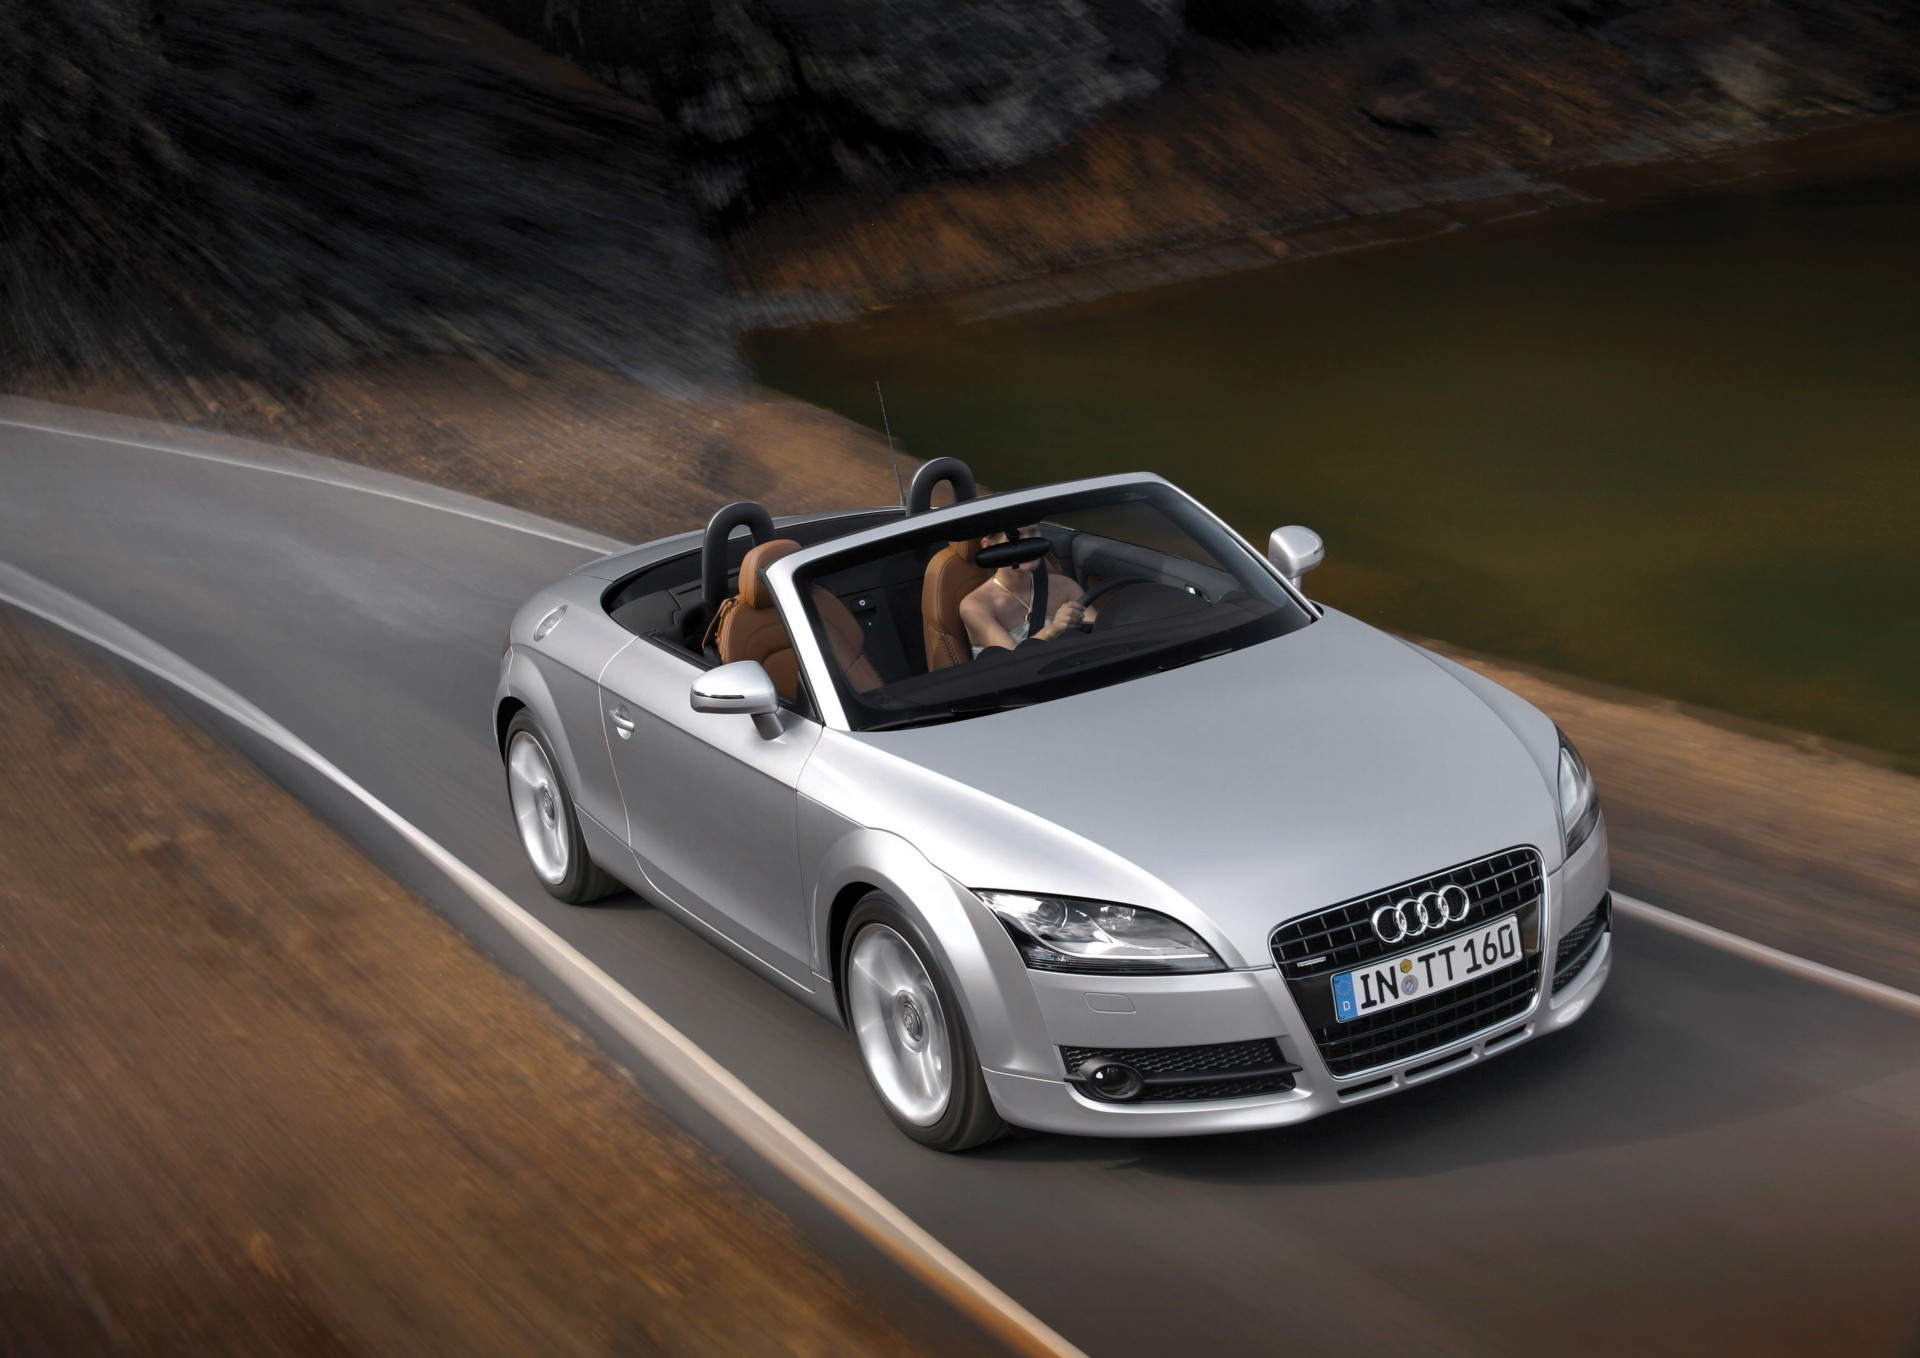 2007 audi tt roadster pictures history value research news. Black Bedroom Furniture Sets. Home Design Ideas